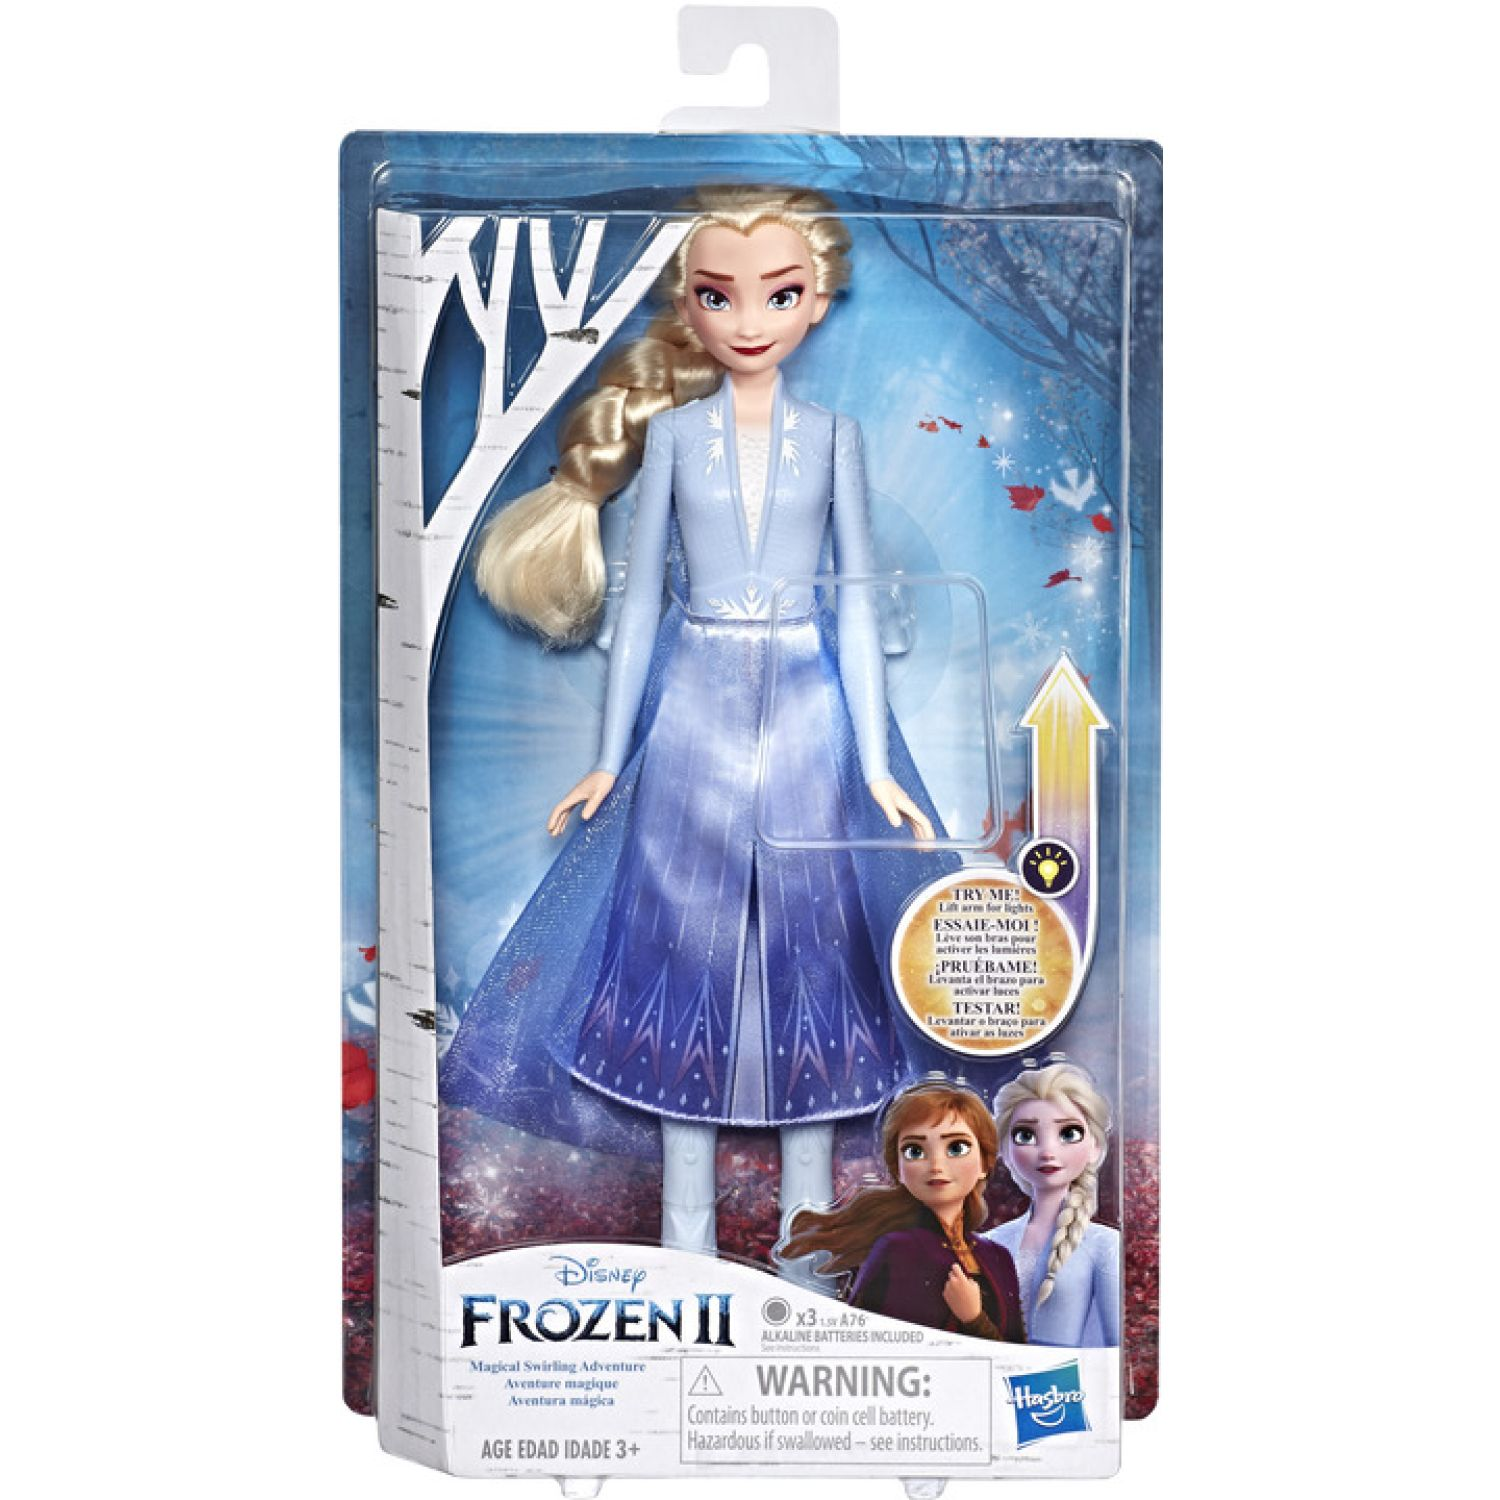 Frozen FRZ 2 MAGICAL SWIRLING ADVENTURE ELSA Varios muñecas